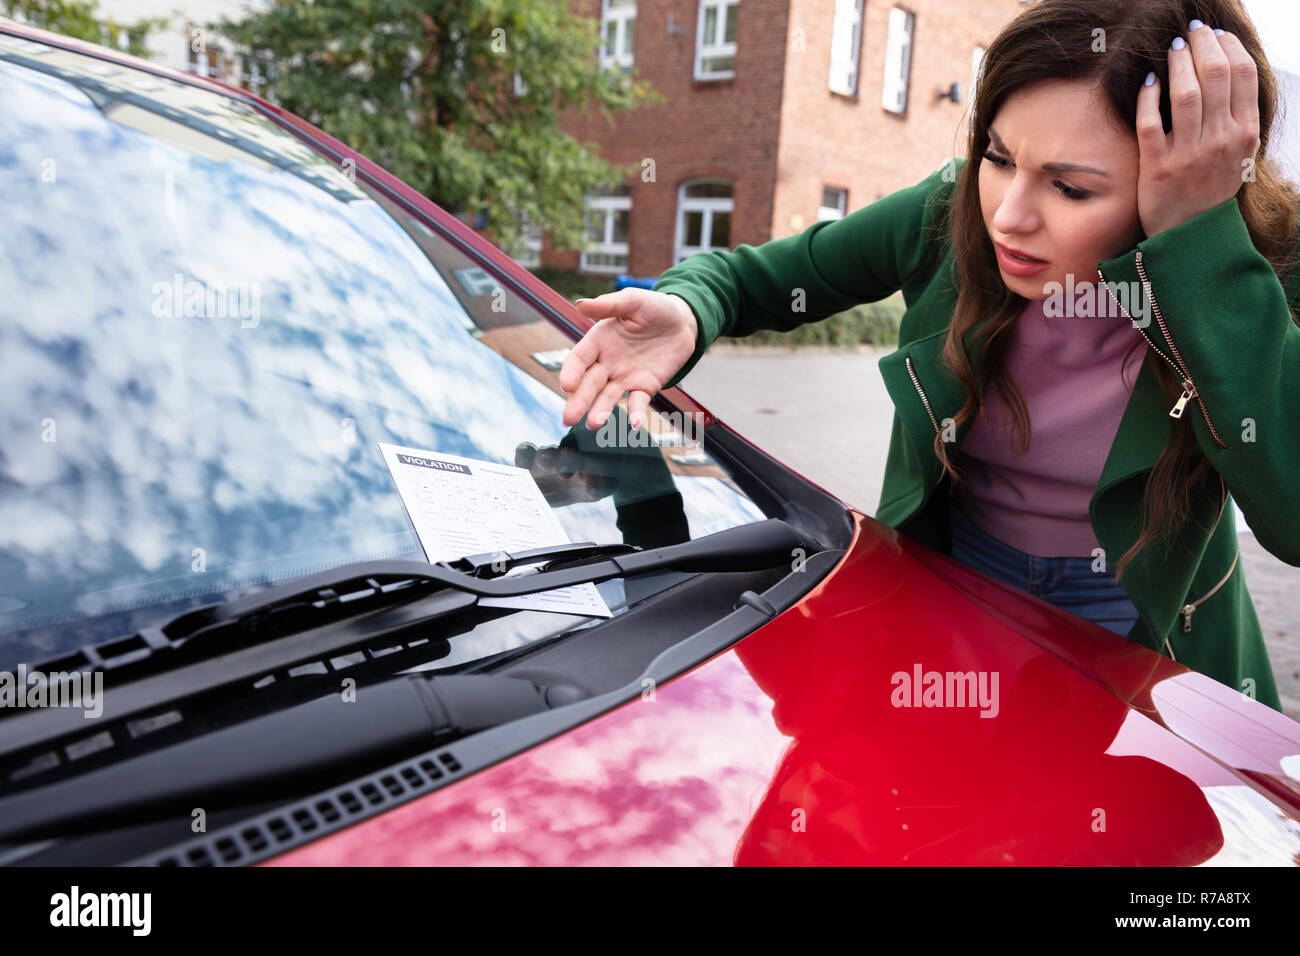 Upset Young Woman Looking At Ticket Fine For Parking Violation On Red Car - Stock Image